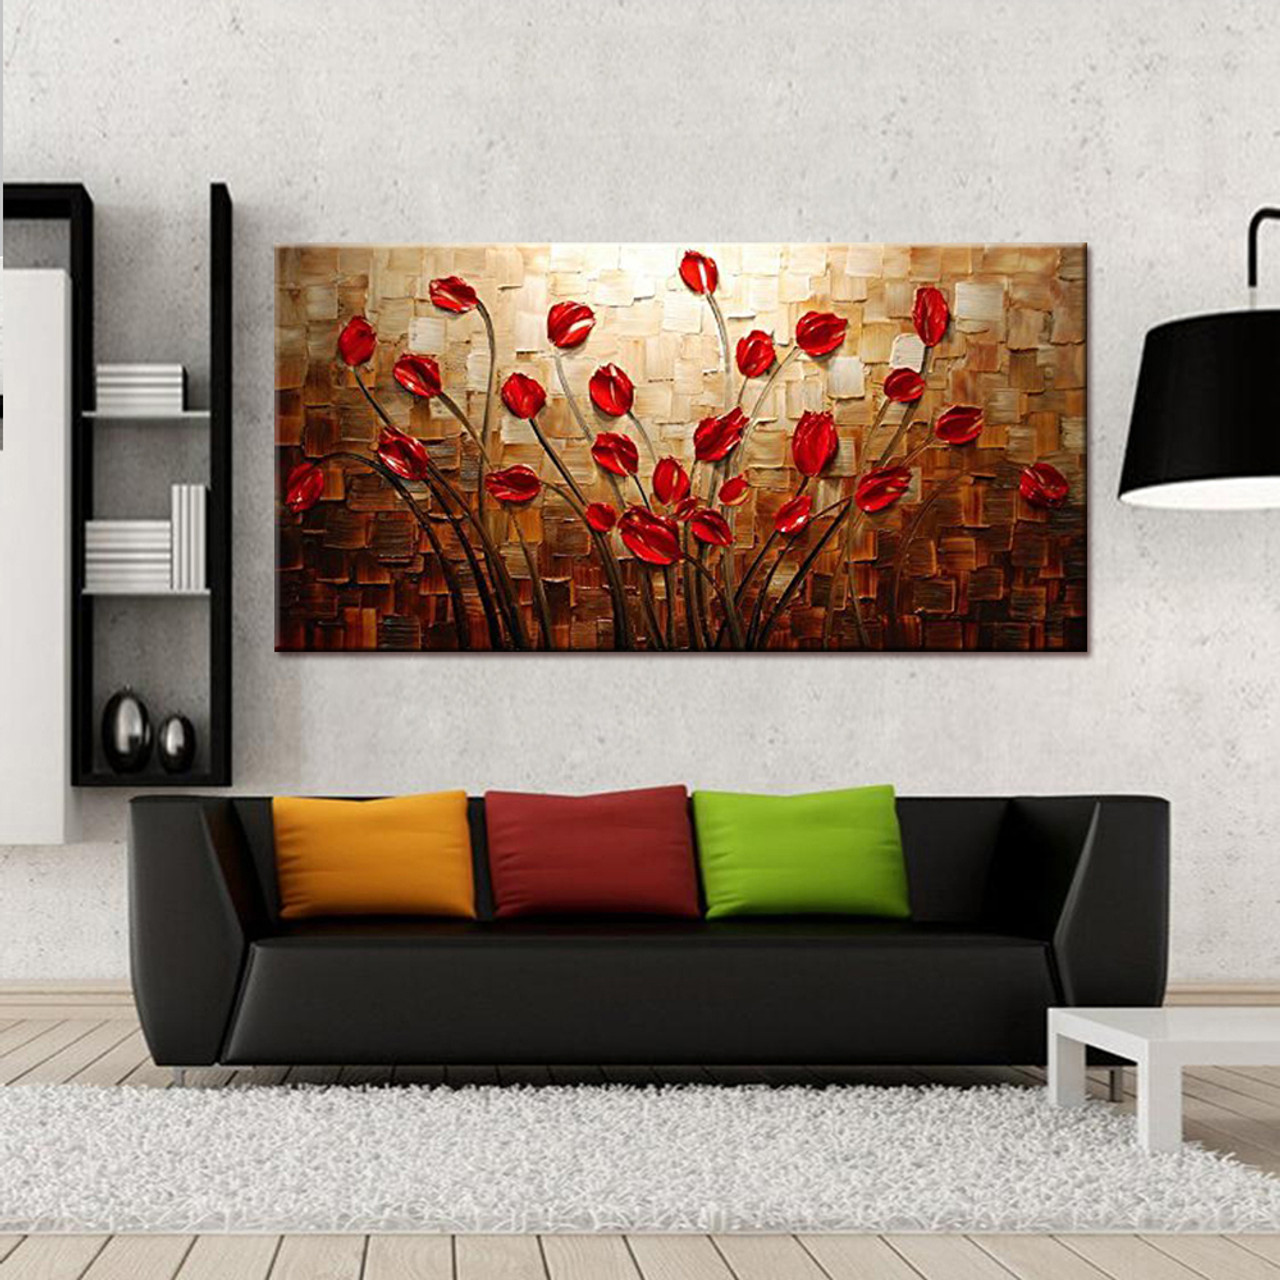 100 hand painted textured palette knife red flower oil painting abstract modern canvas wall art